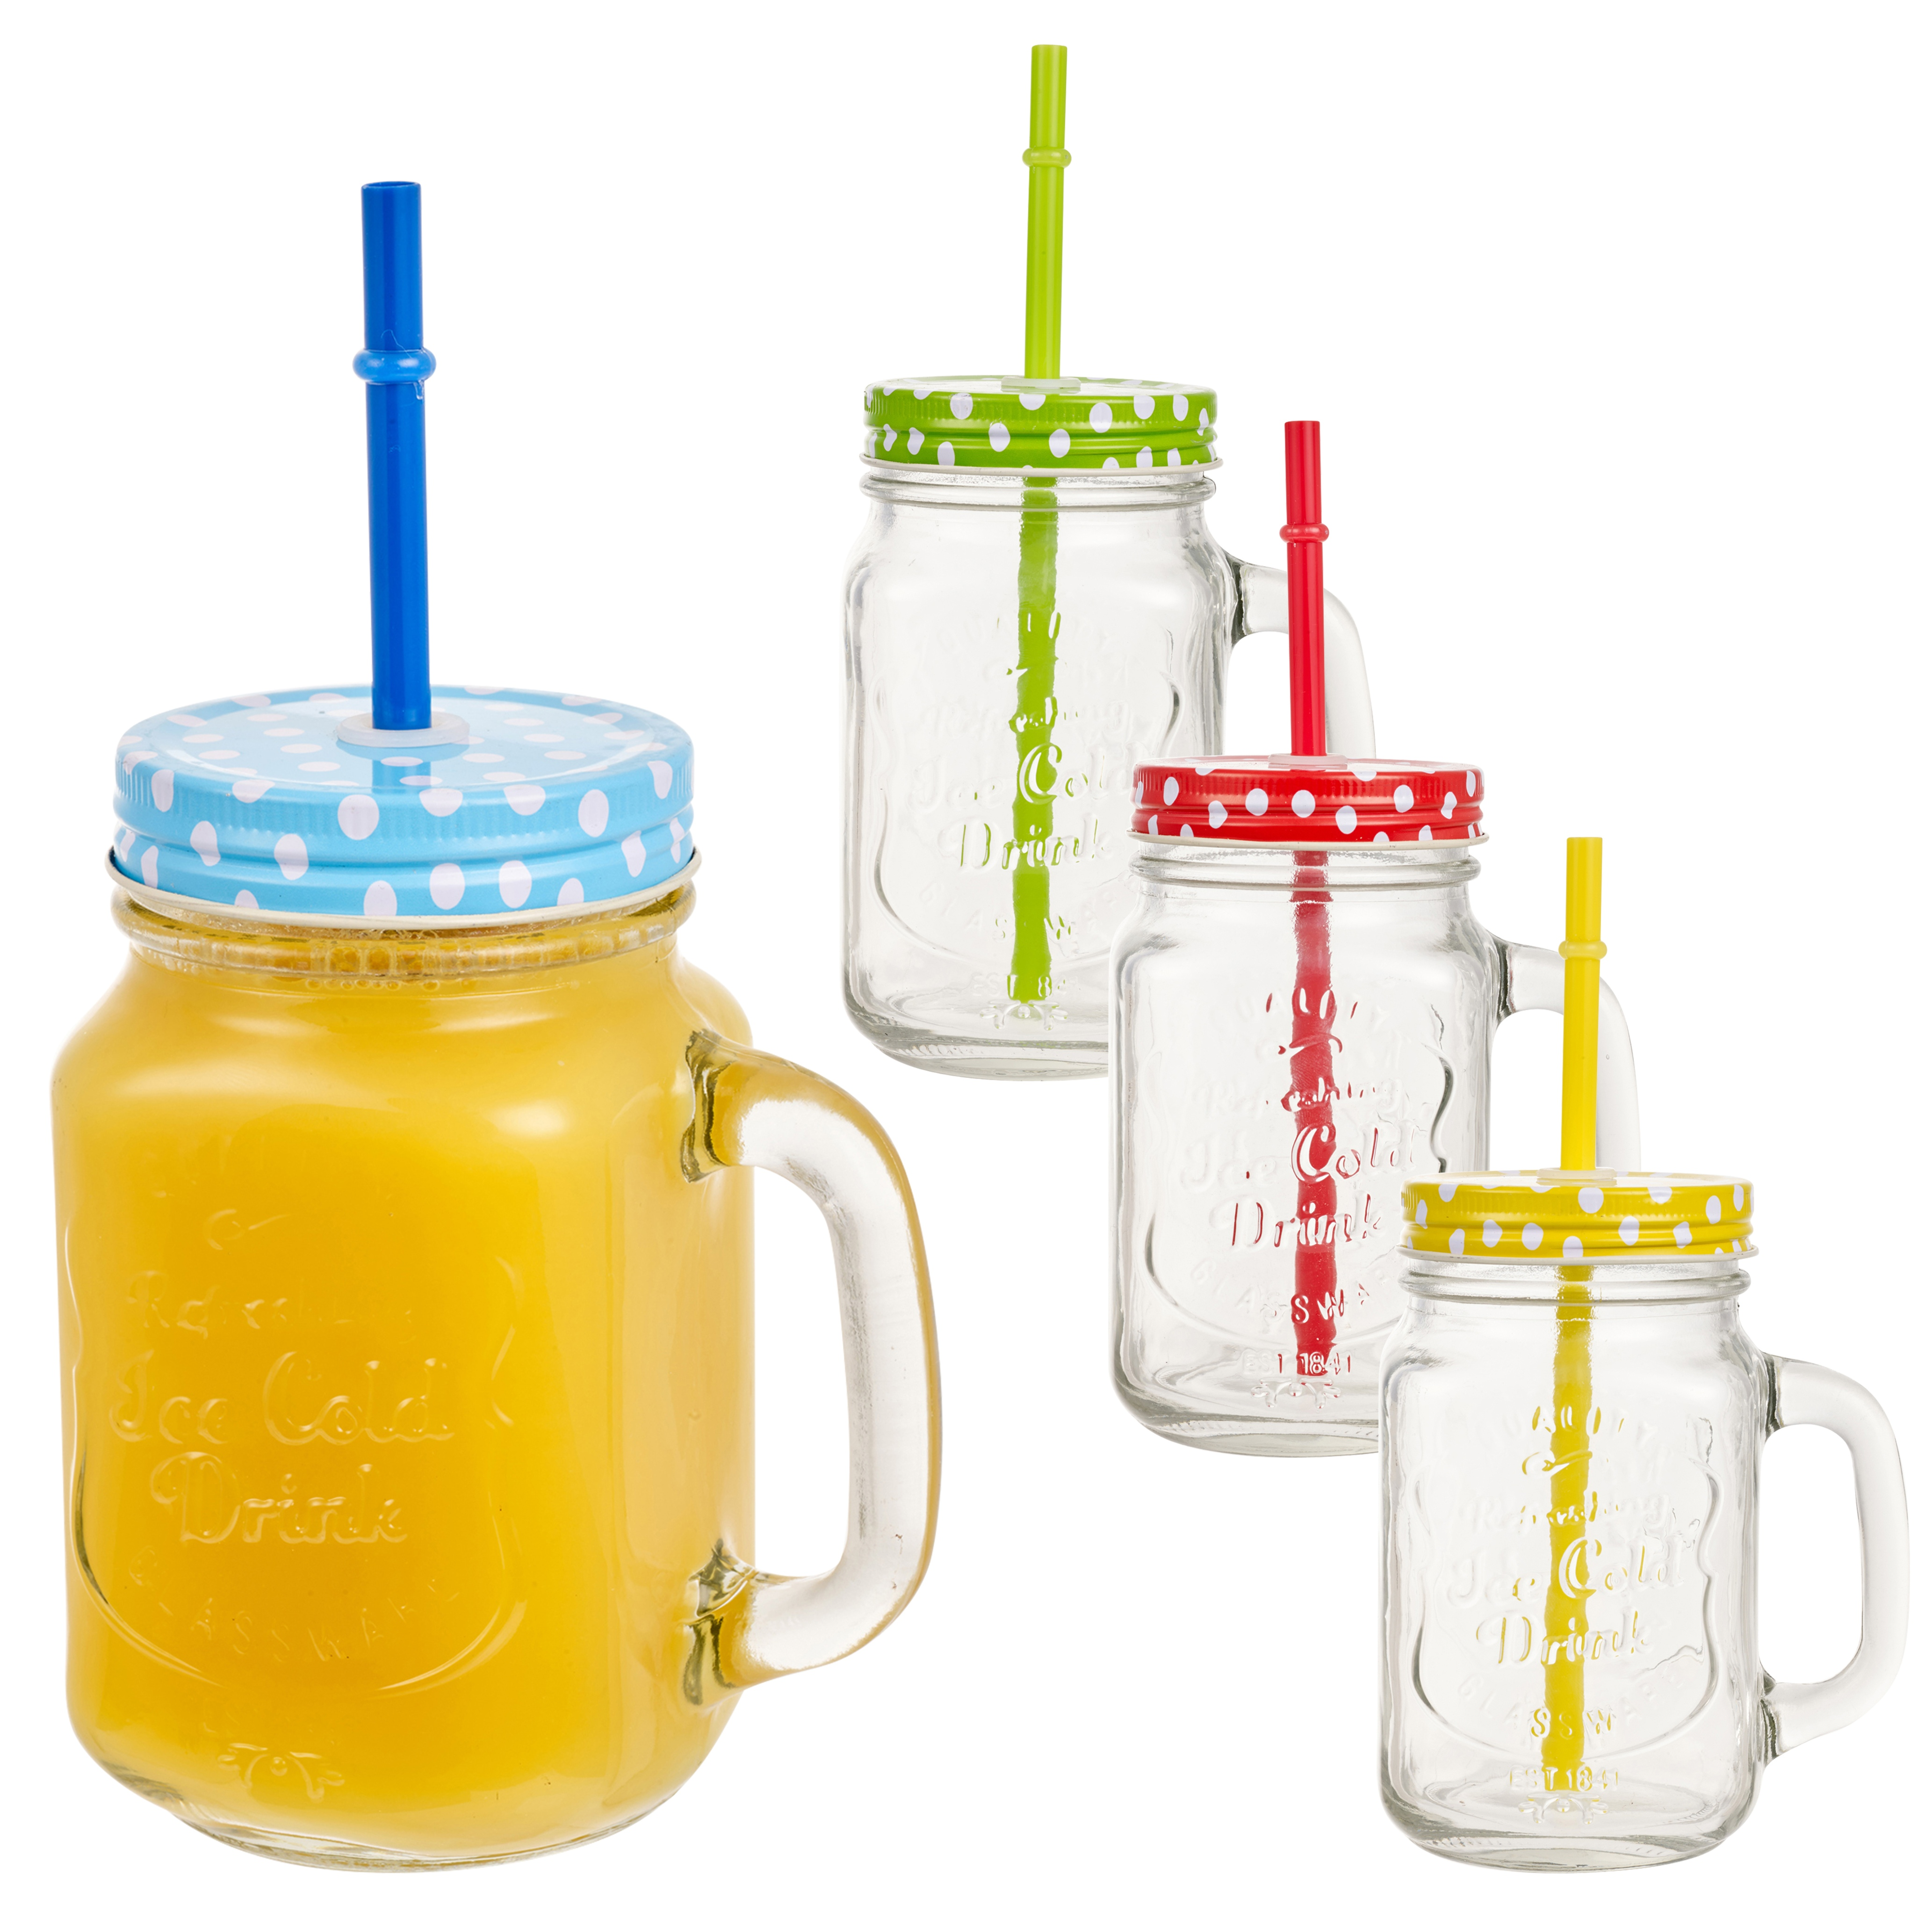 Green Glass Jug With Yellow Plastic